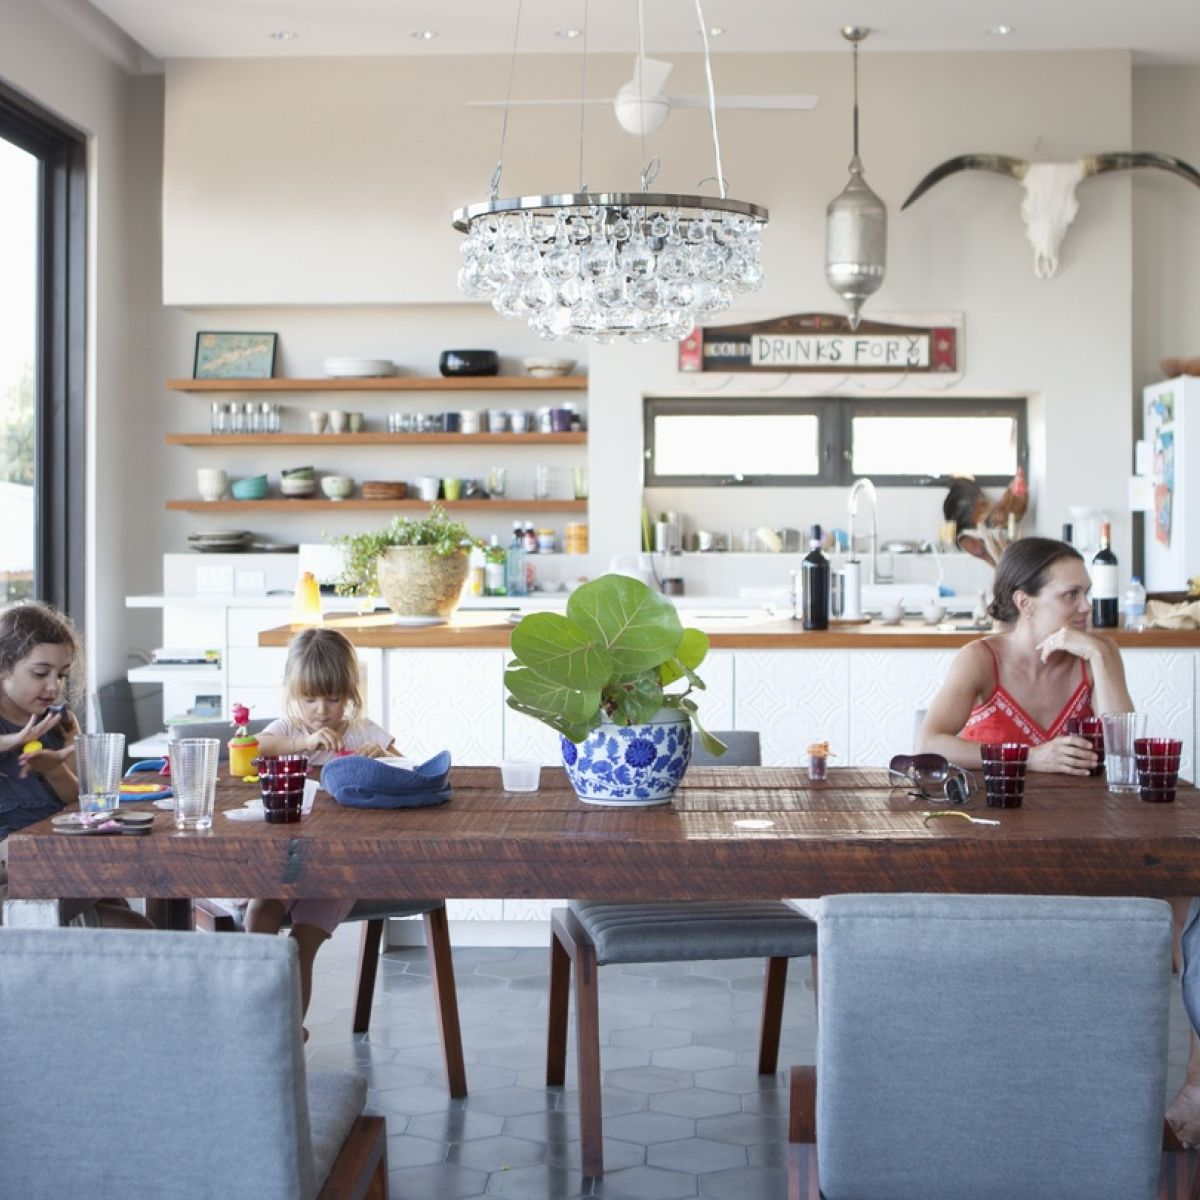 Supersize ovens and going green: designers on new kitchen trends